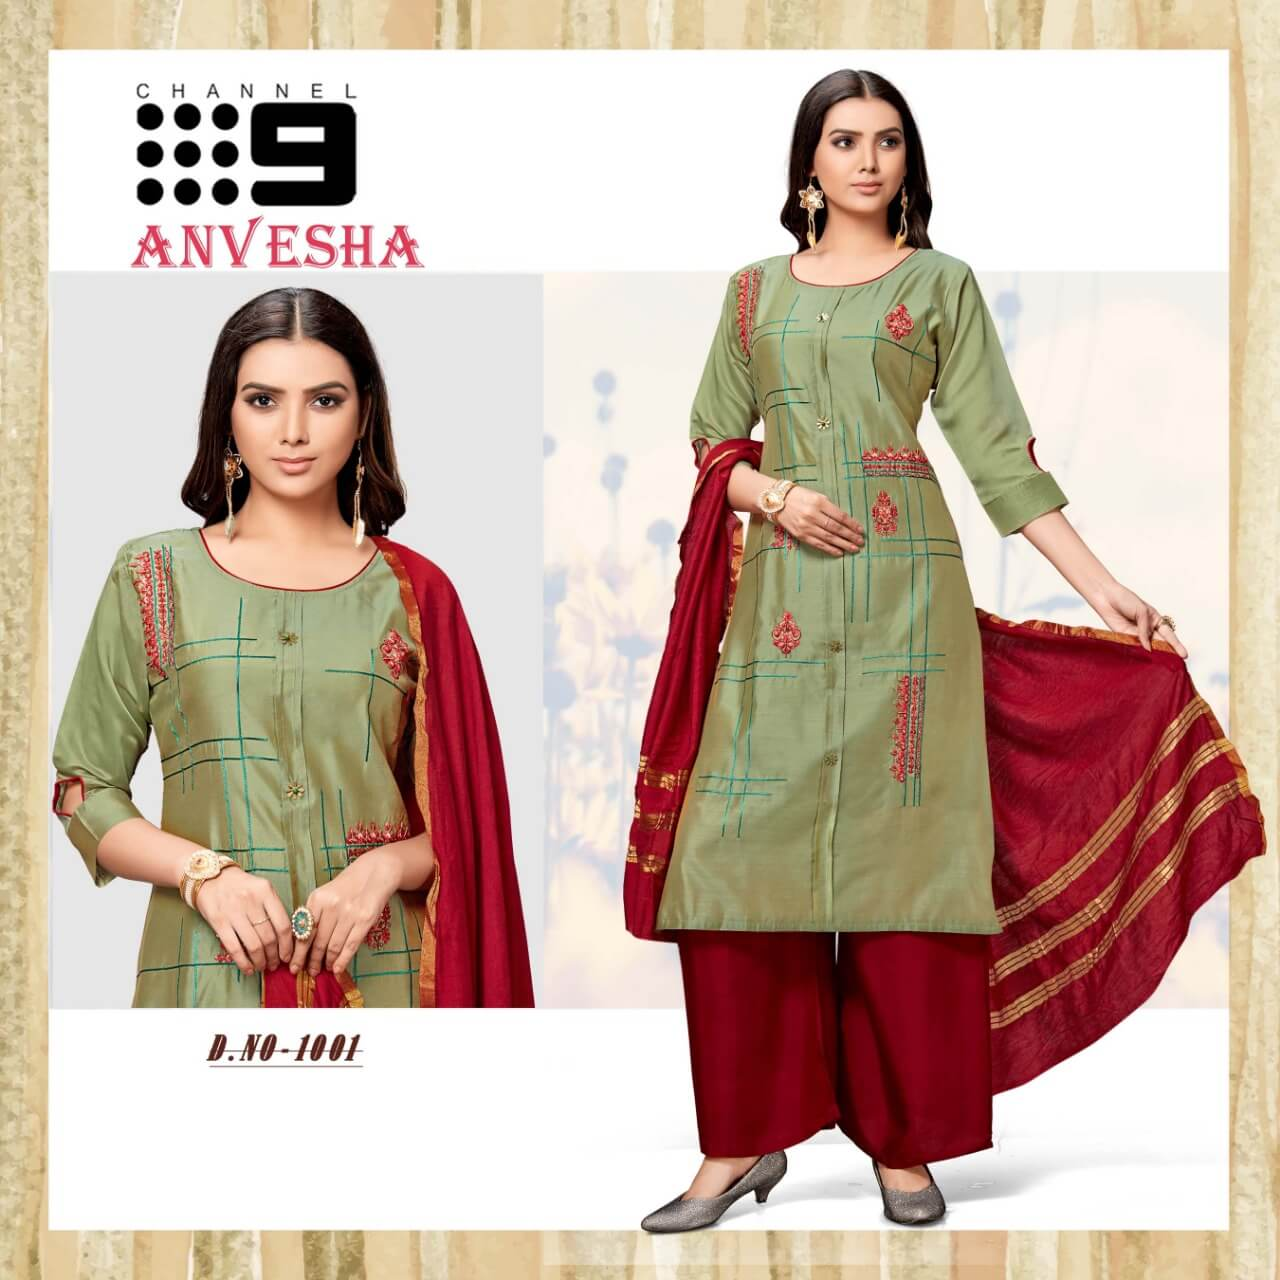 Channel 9 Anvesha collection 1